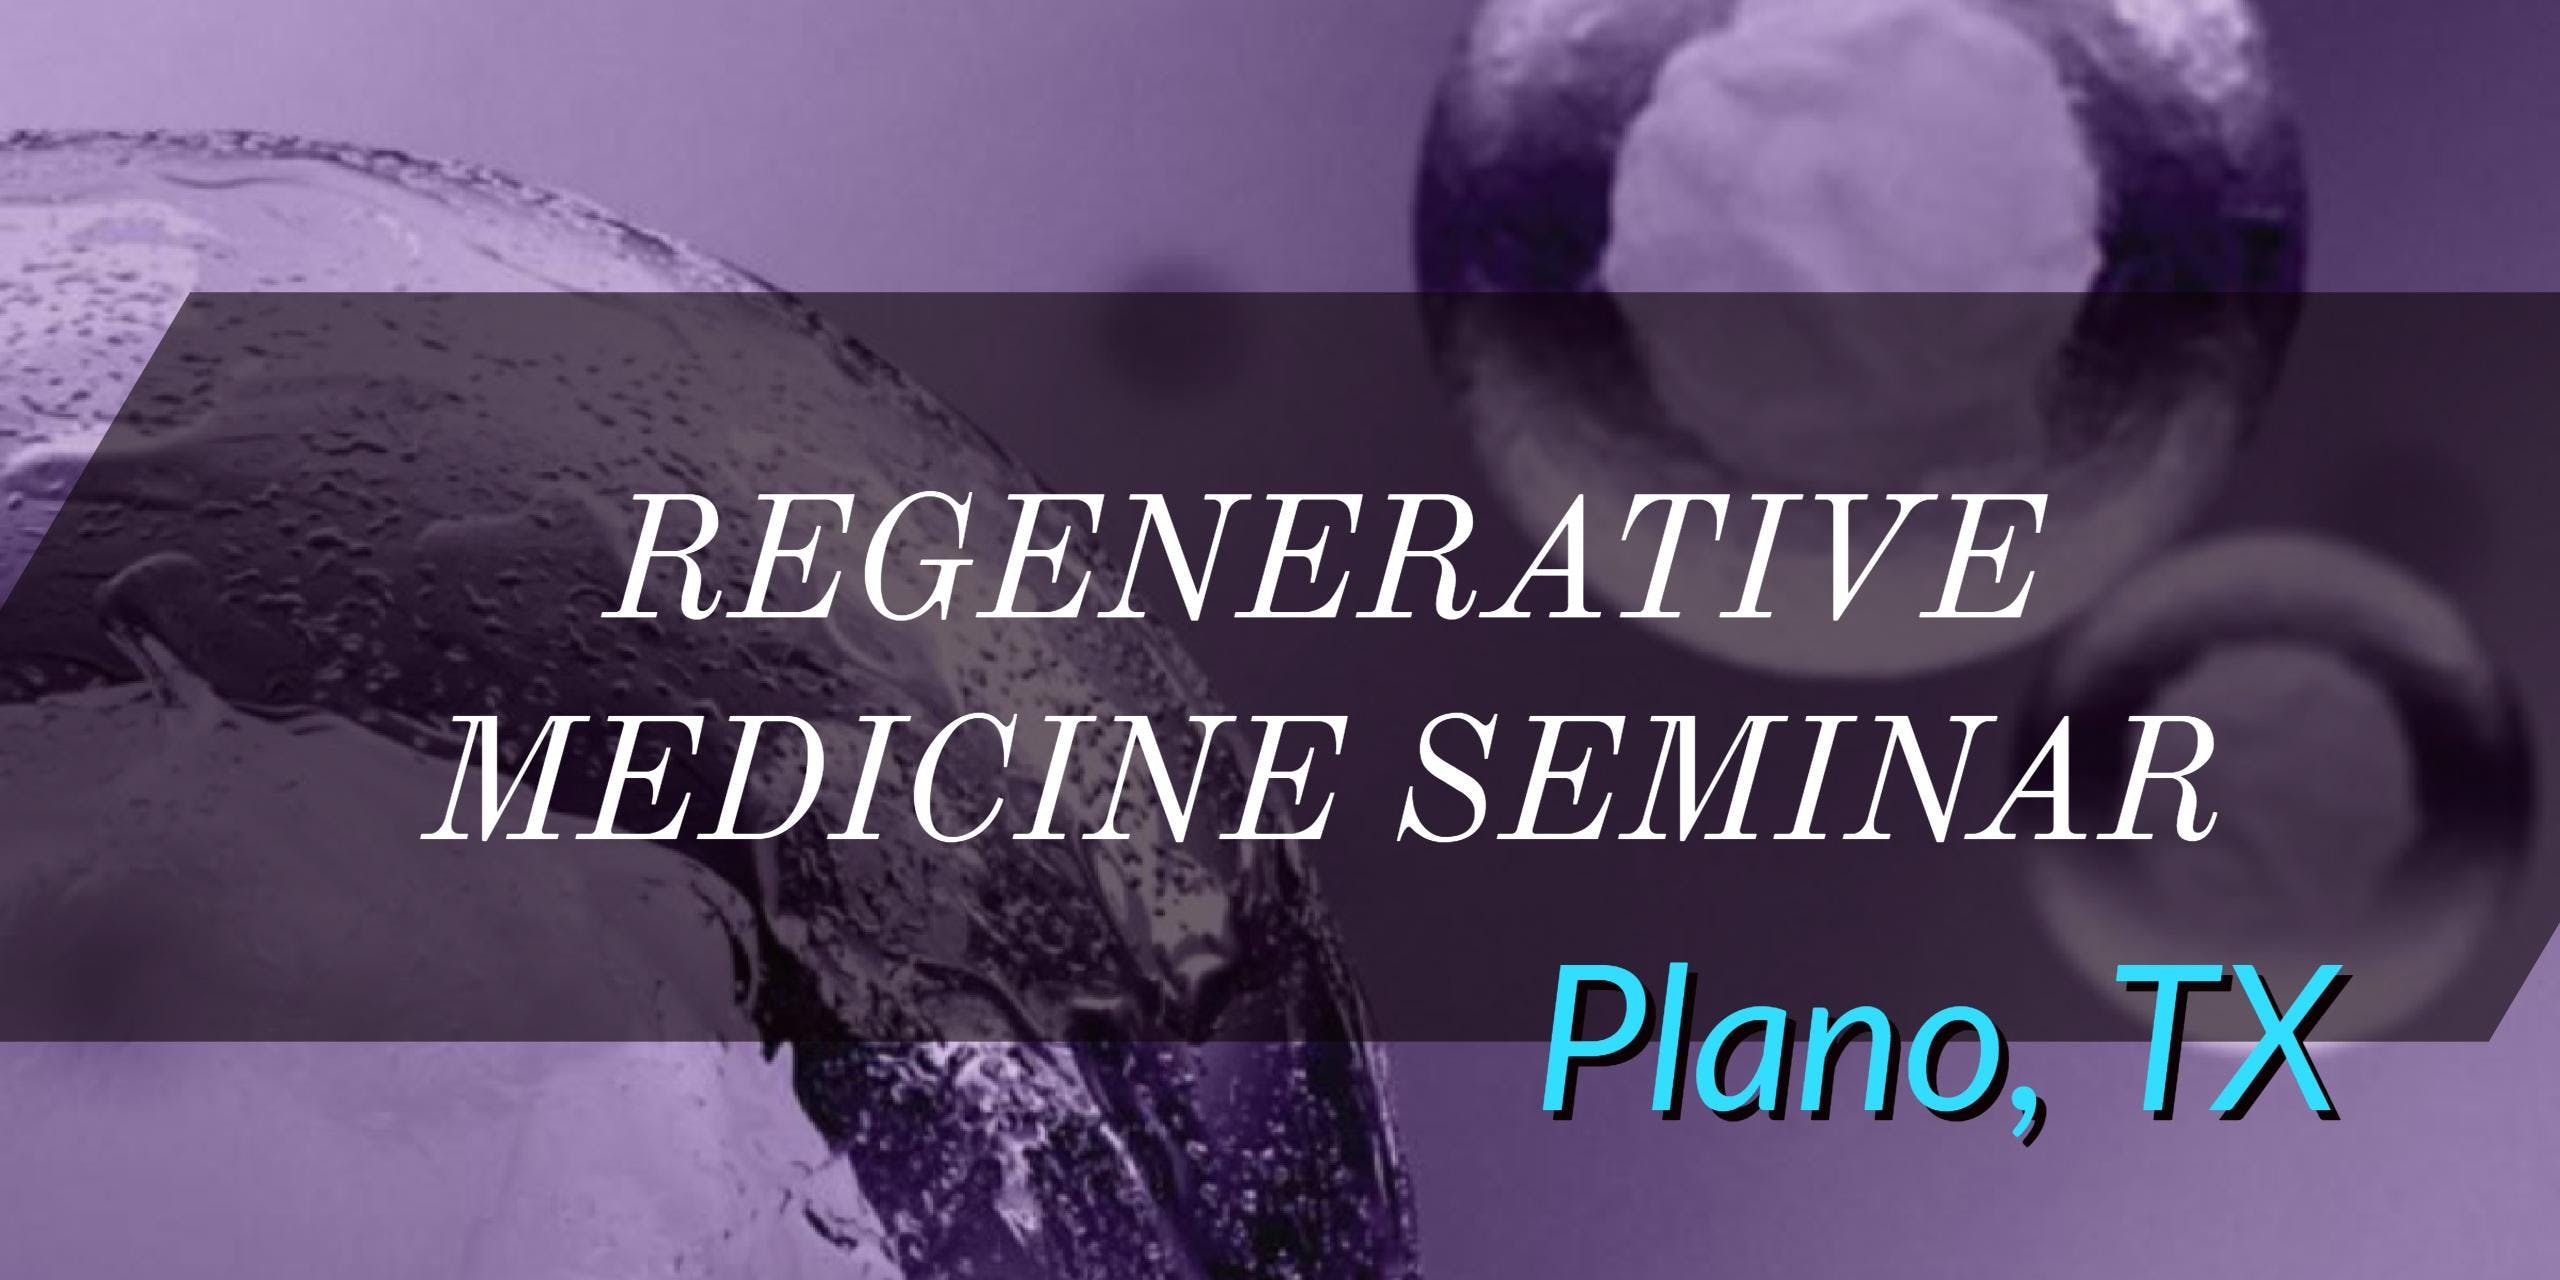 FREE Regenerative Medicine & Stem Cell for Pain Relief Seminar - Plano, TX